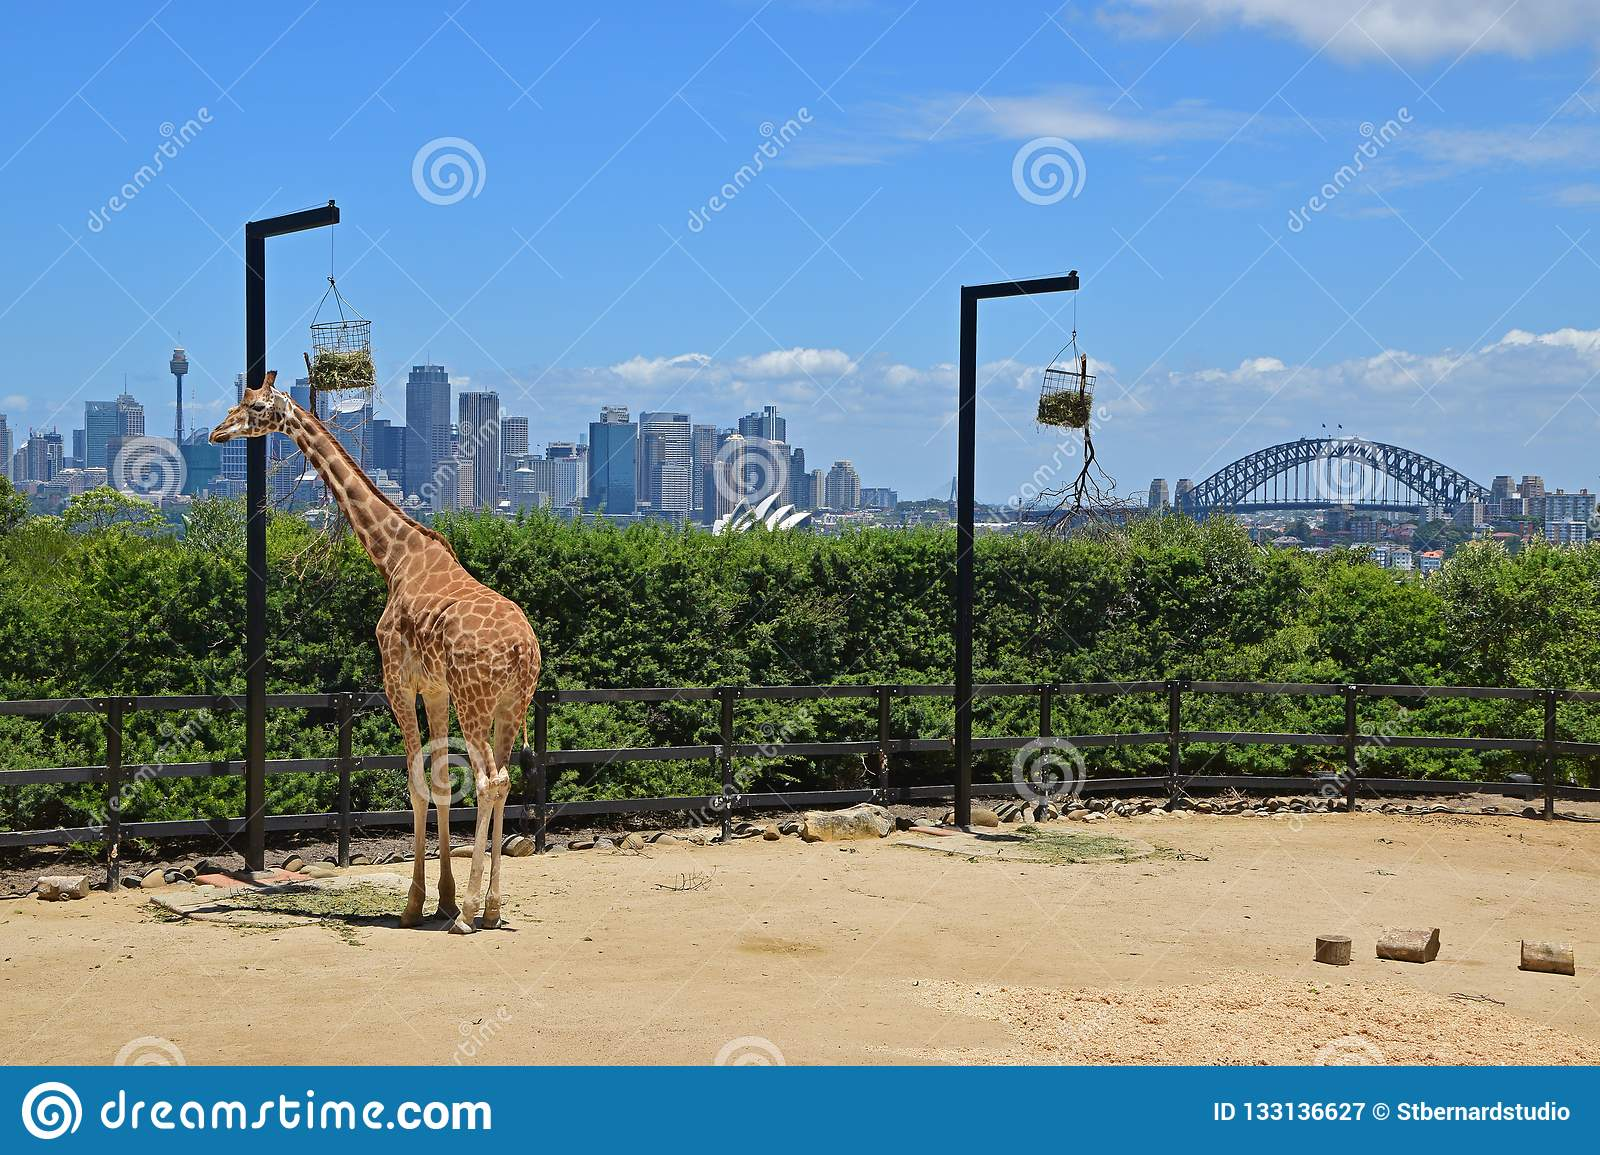 Giraffe in Taronga Zoo eating food from the hanging basket with magnificent view of Sydney